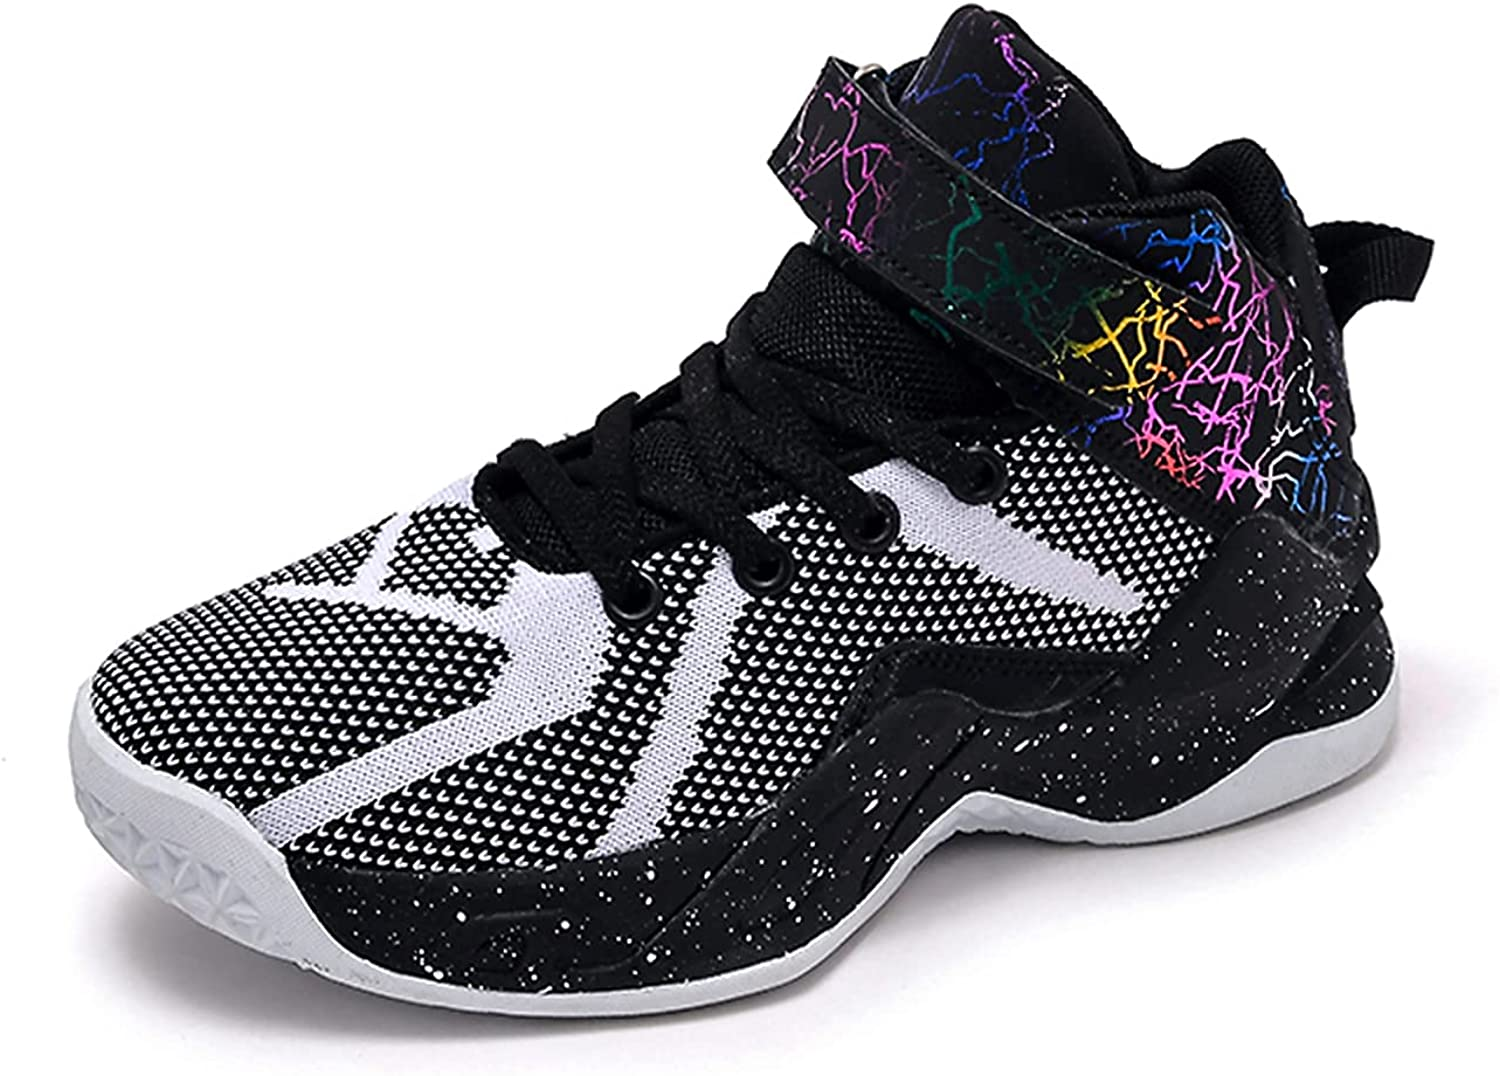 Narstin Kid's Basketball Shoes Outdoor High-Top Sneakers Casual Fashion Running Shoes Comfort Durable Sport Shoes